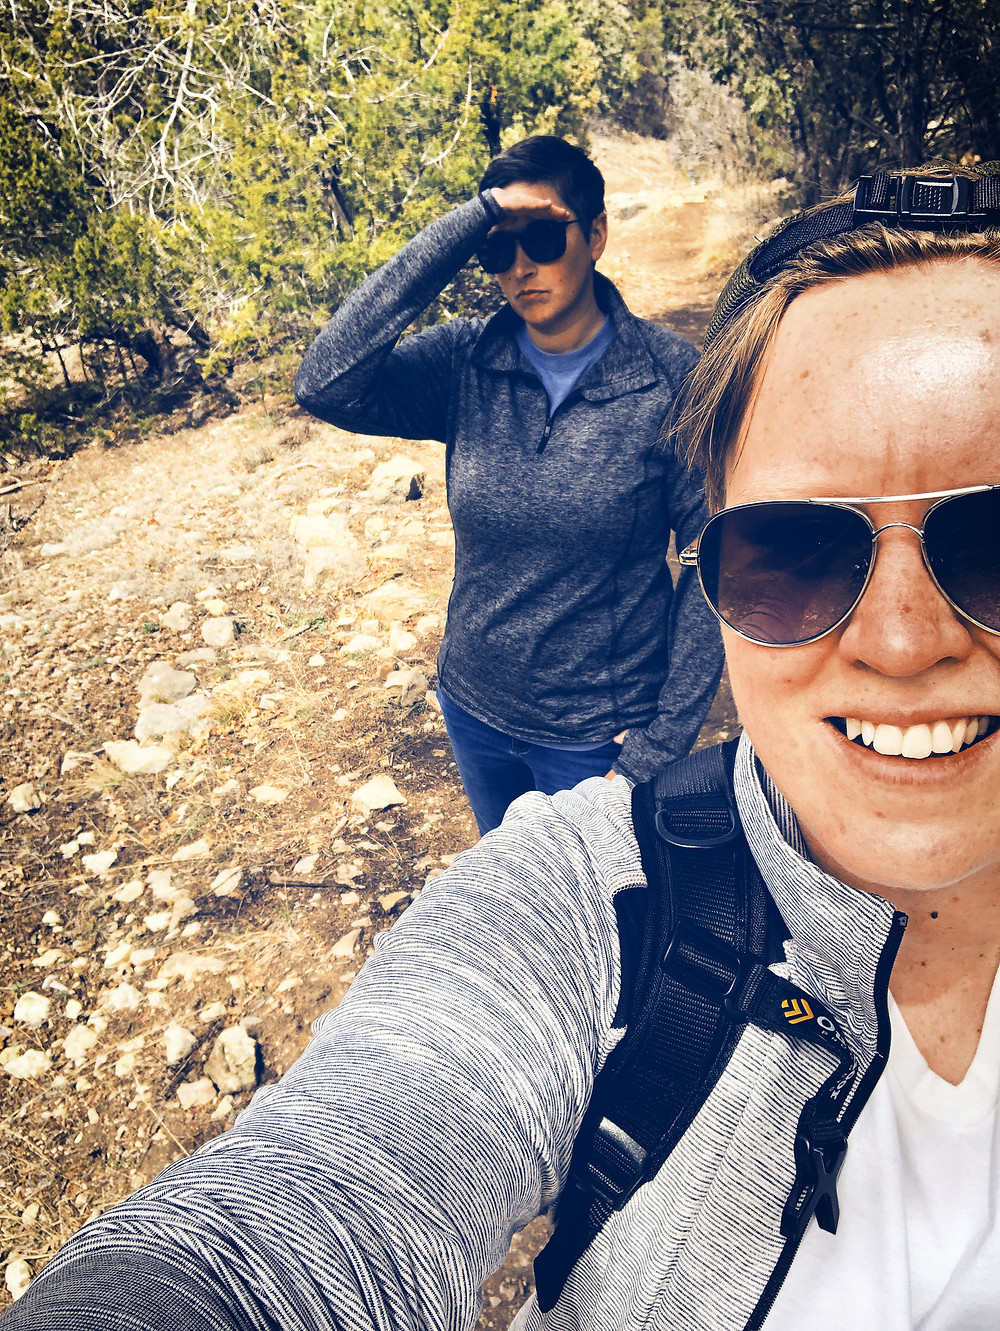 Maintaining social distancing on the hiking trail.